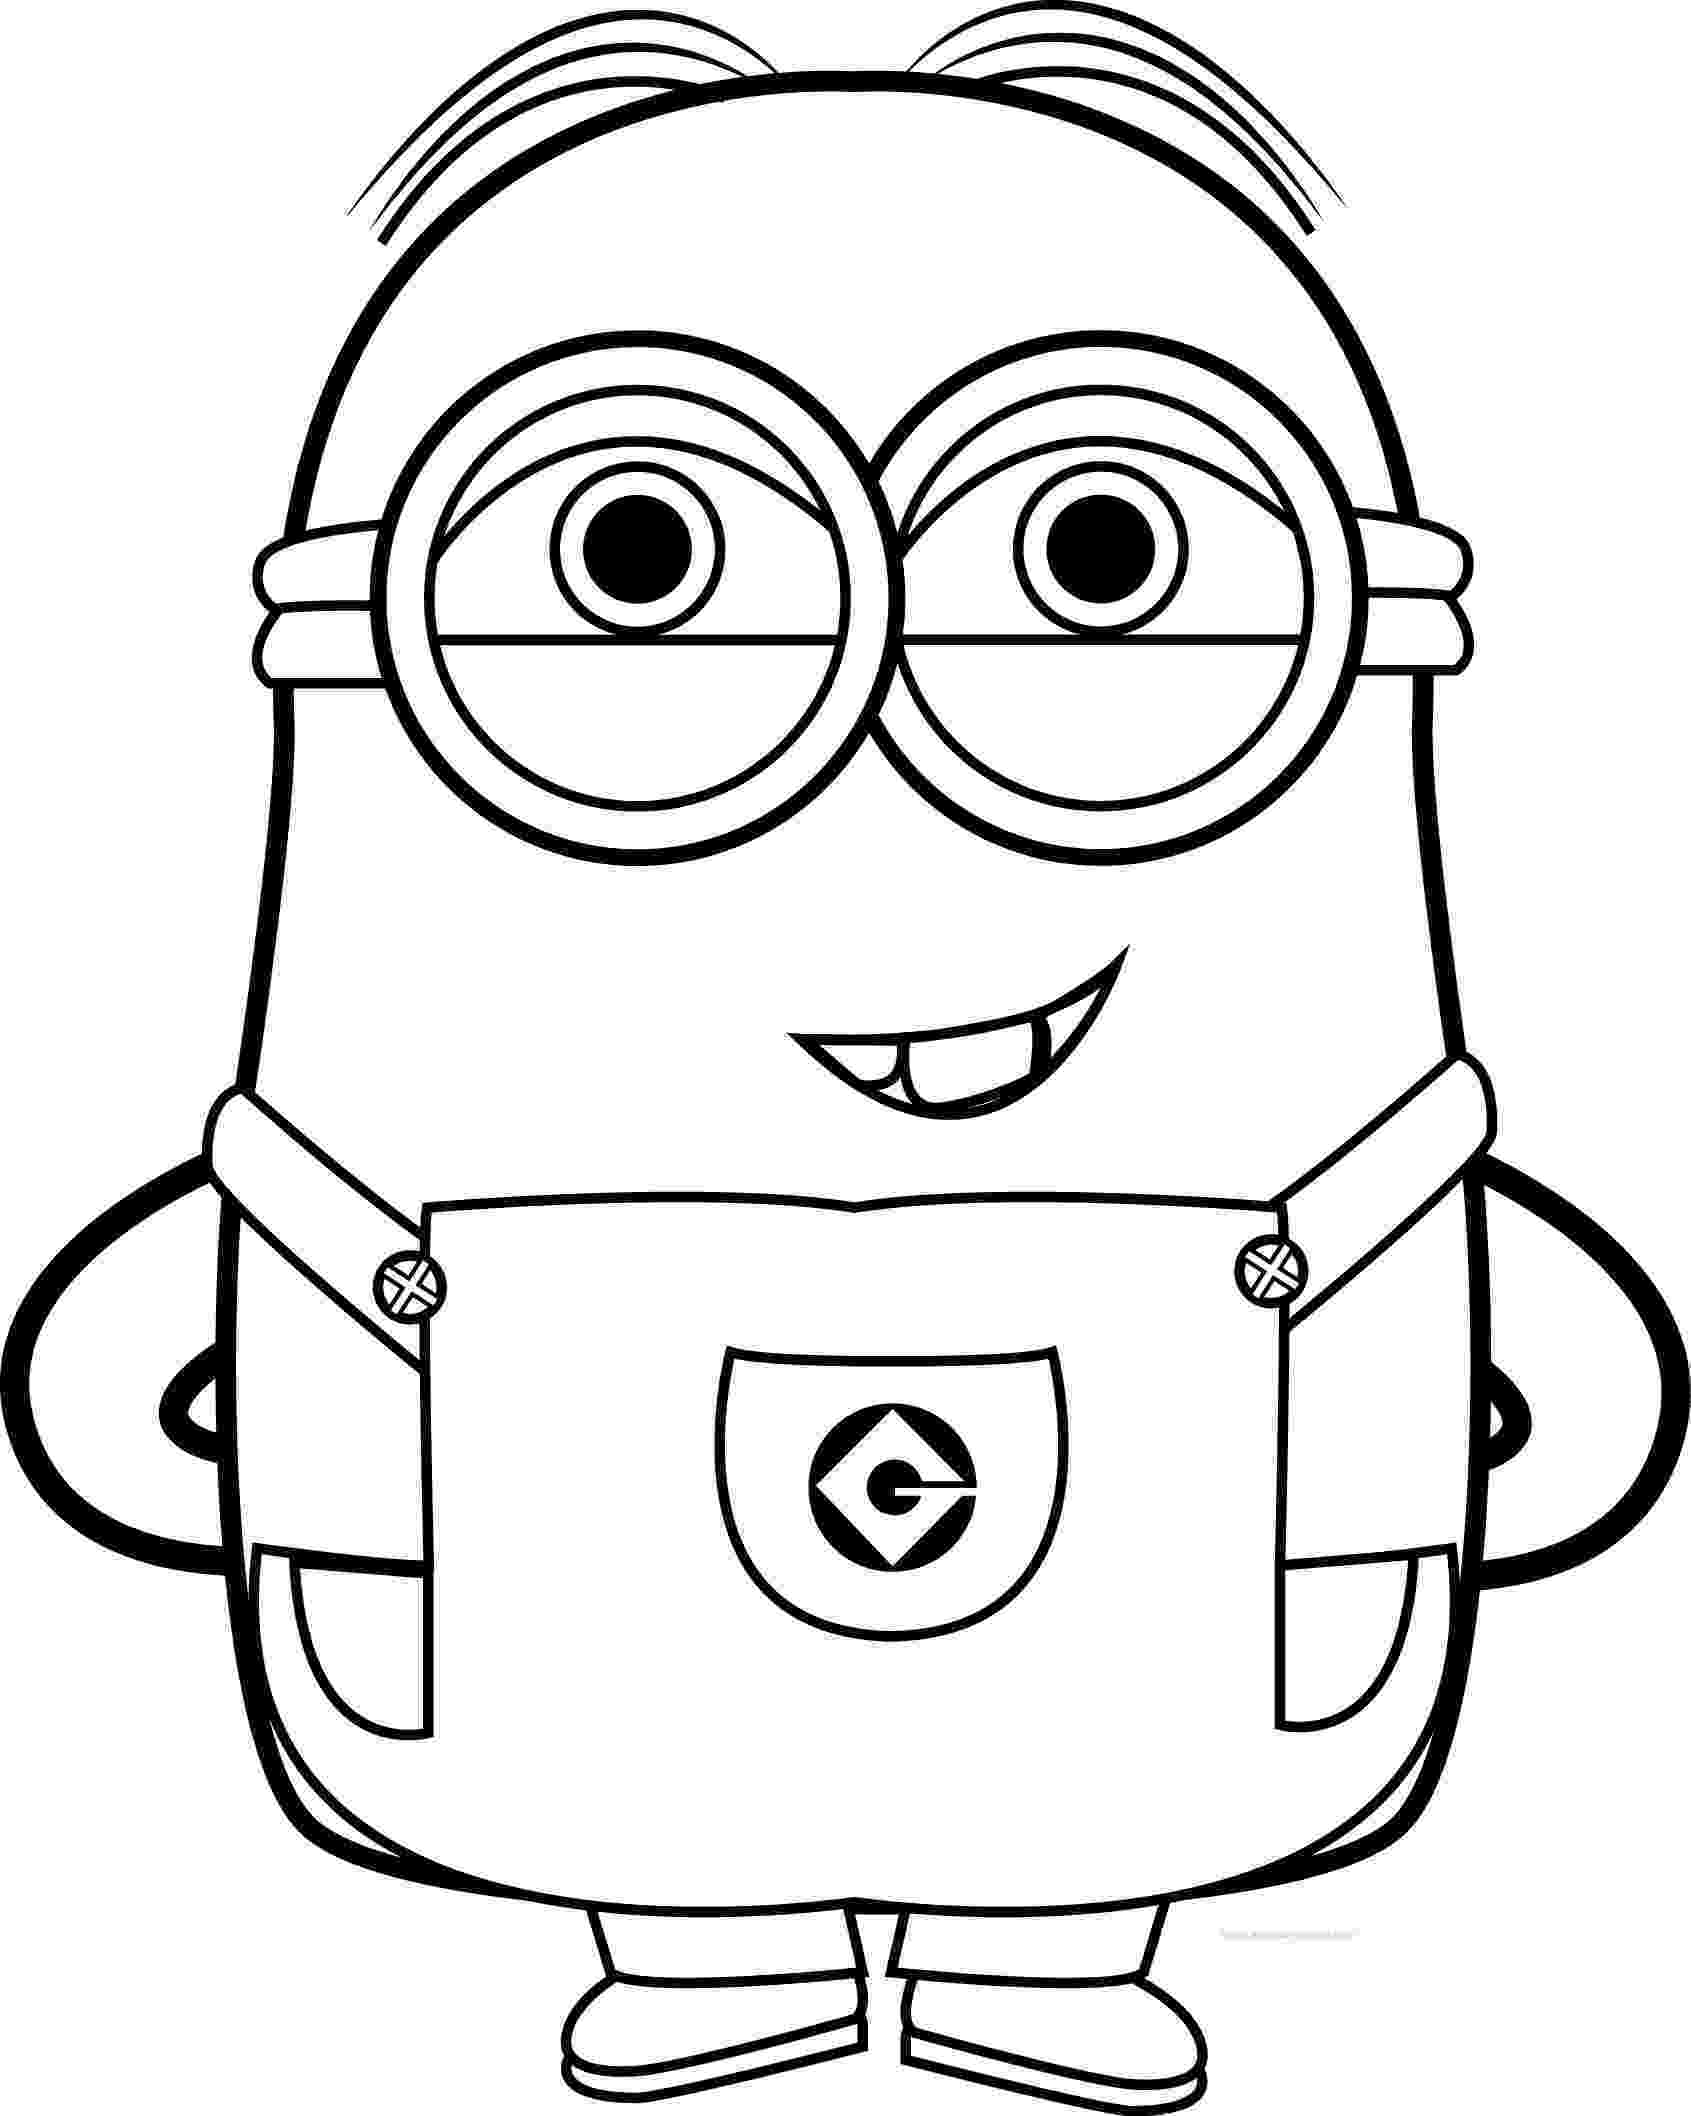 coloring book pages minions best funny minions quotes and picture coloring page pages minions book coloring